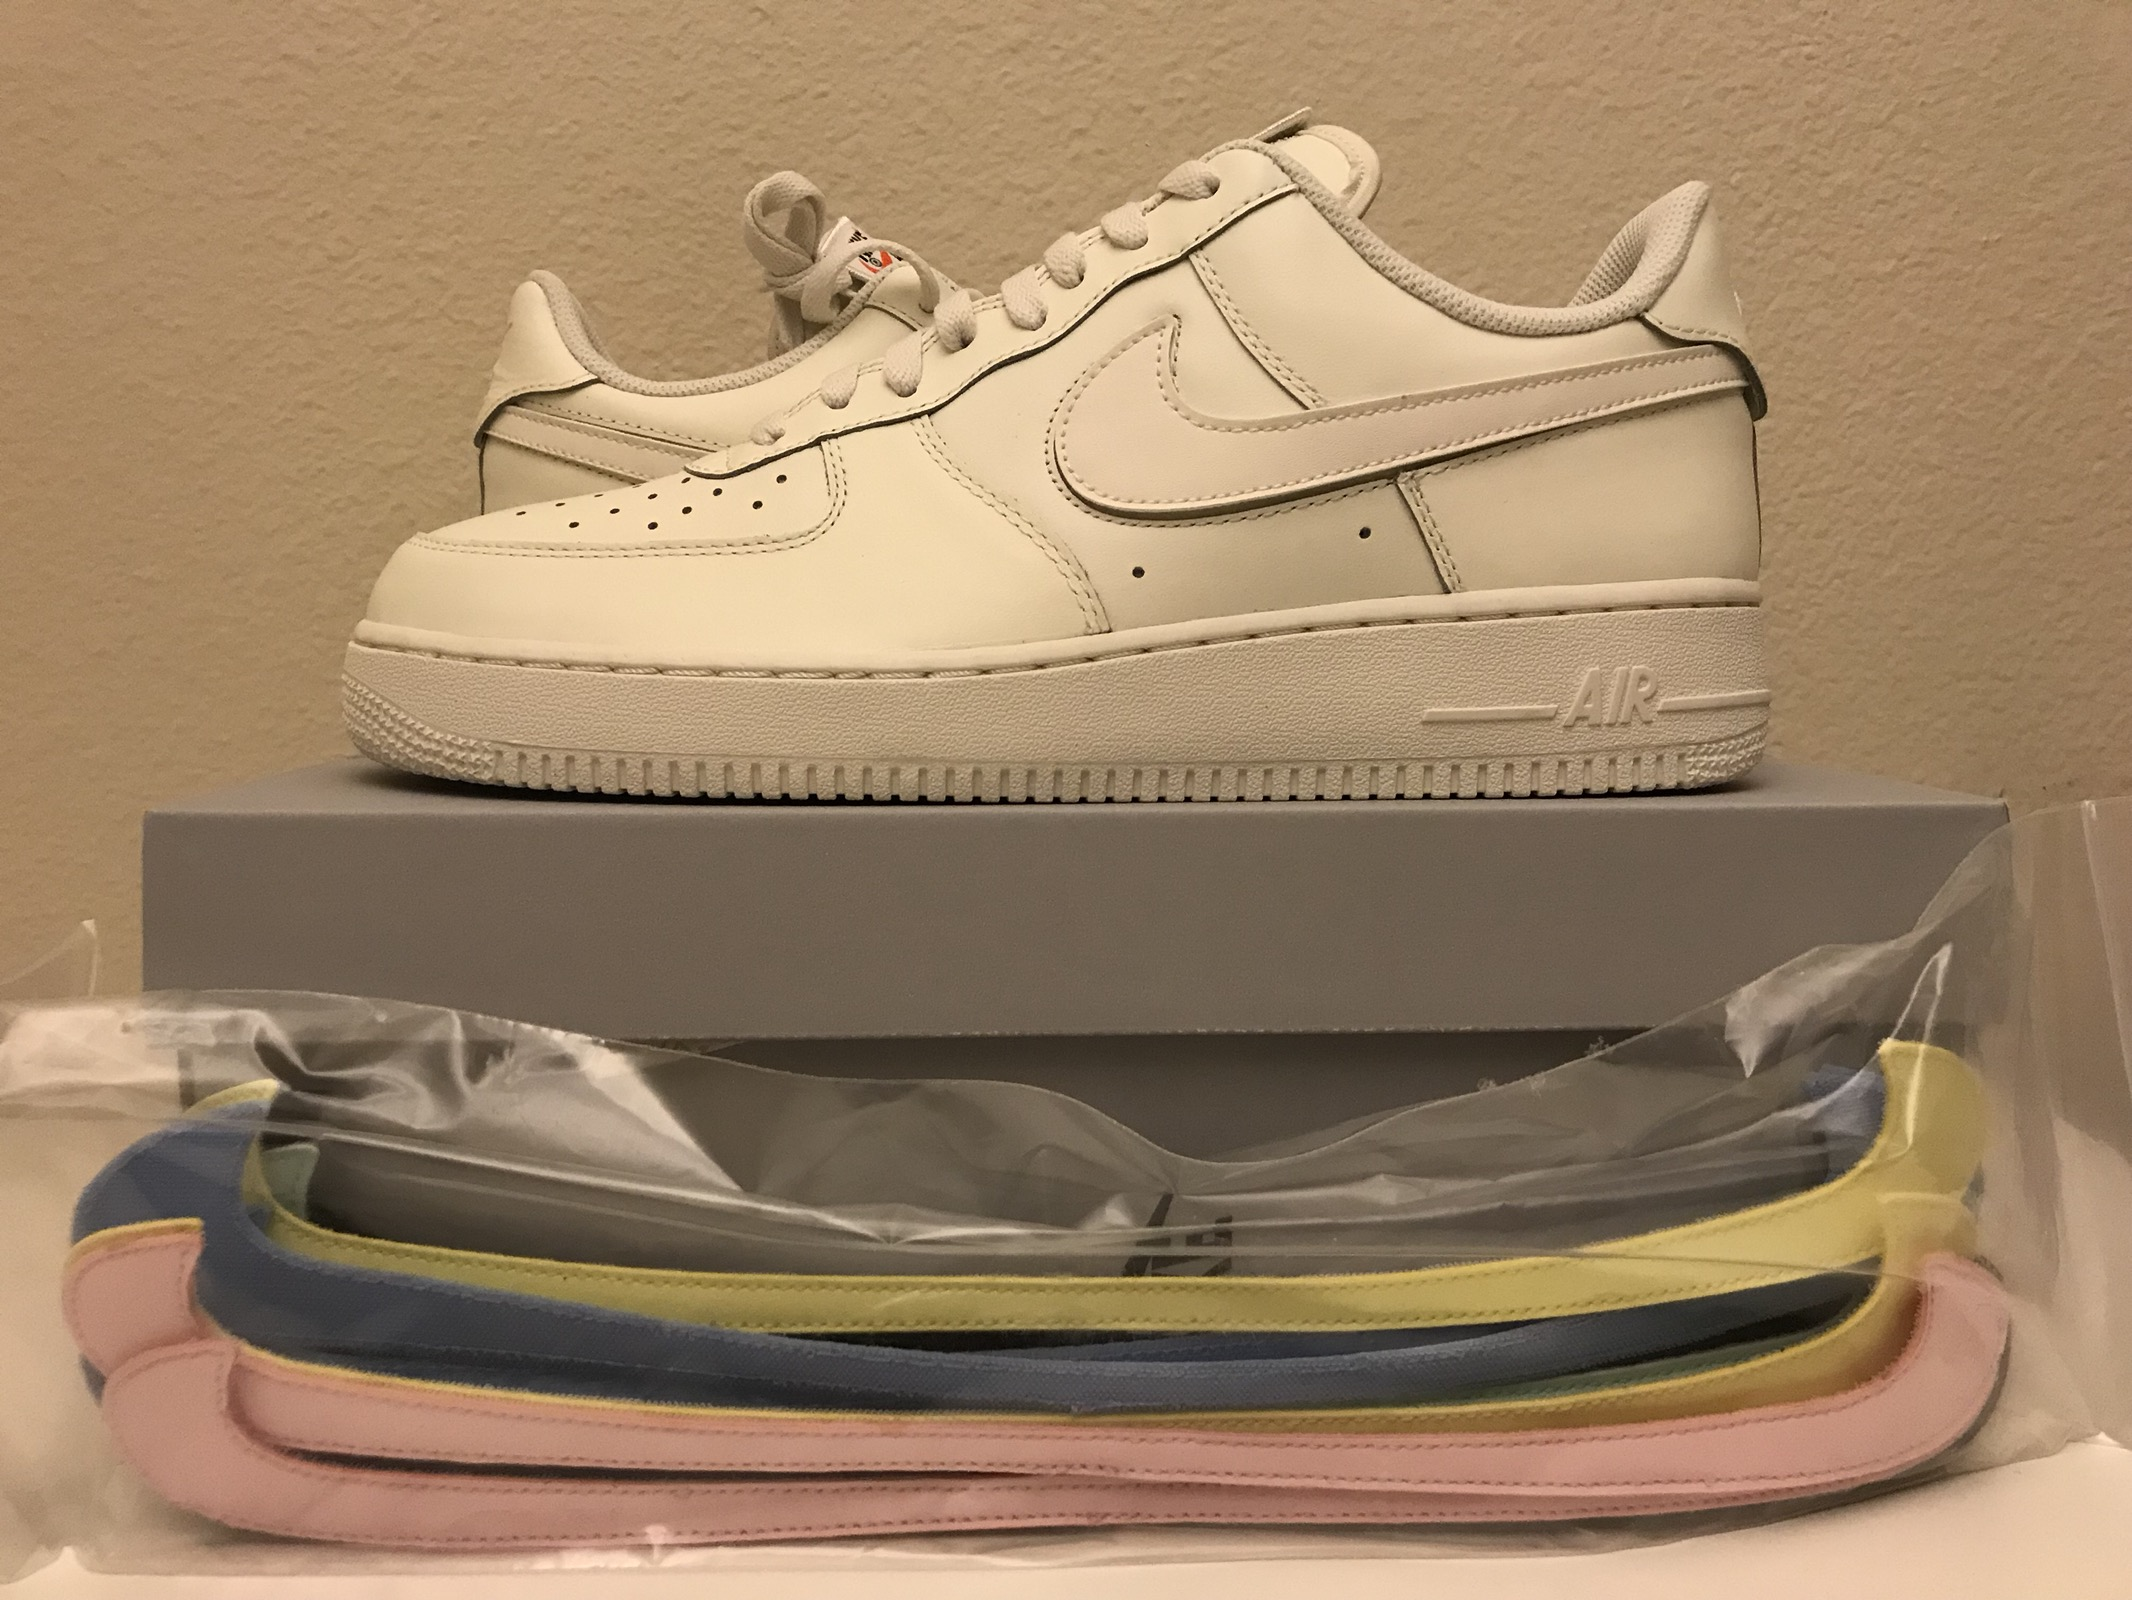 1a34e663e17 Nike Air Force 1 Low All Star Swoosh Pack Sail Size 10.5 - Low-Top ...